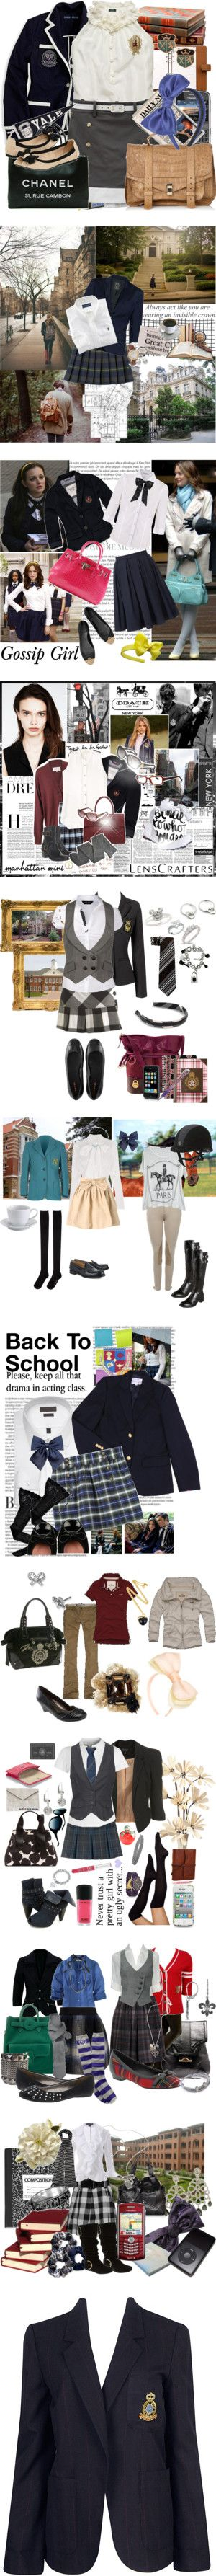 """Private School Uniforms"" by taryn-scott ❤ liked on Polyvore"